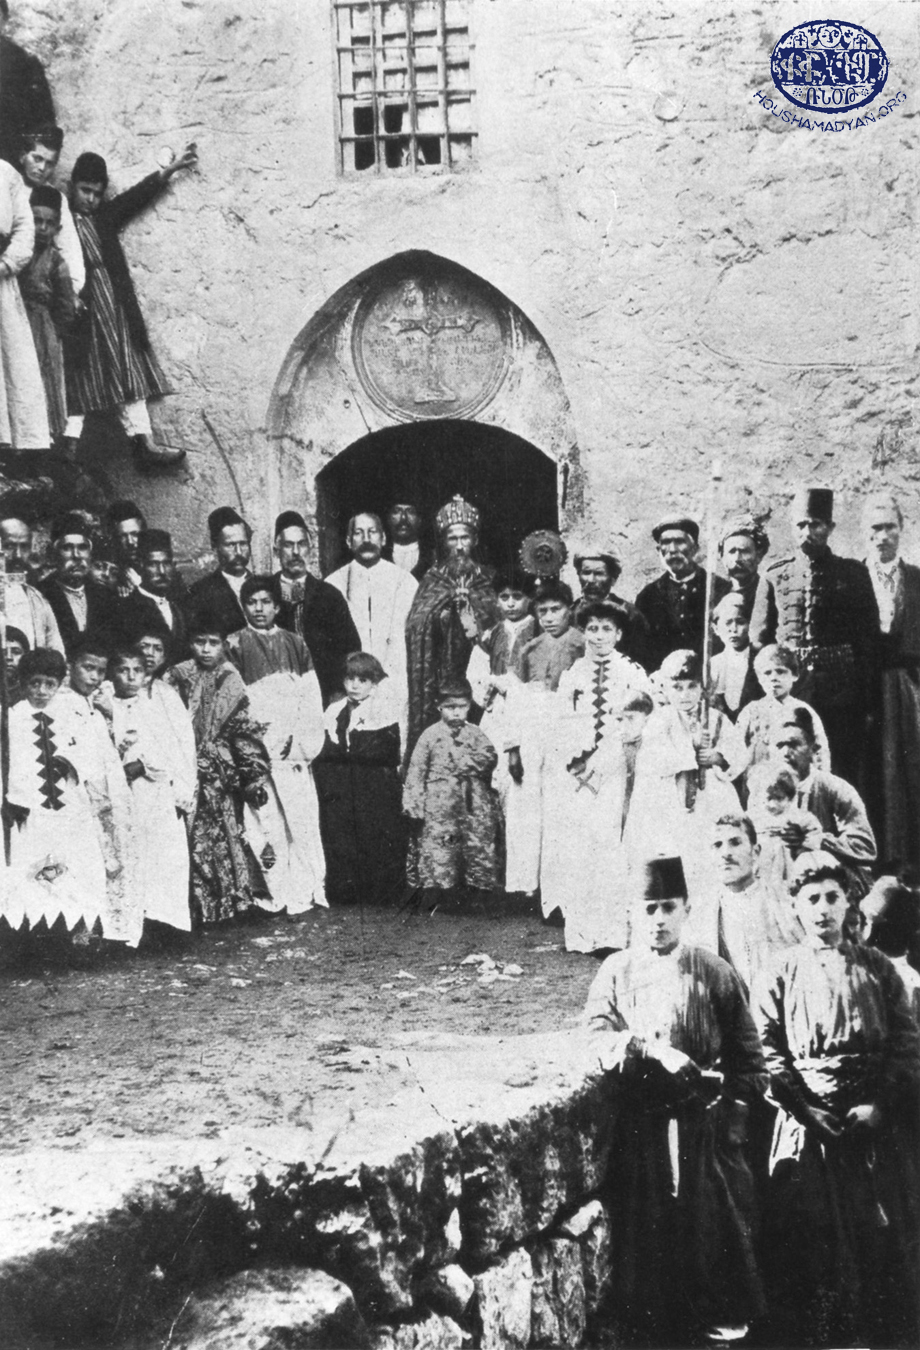 Ichme, 1913: The entrance of St. Nigoghos Armenian Apostolic Church